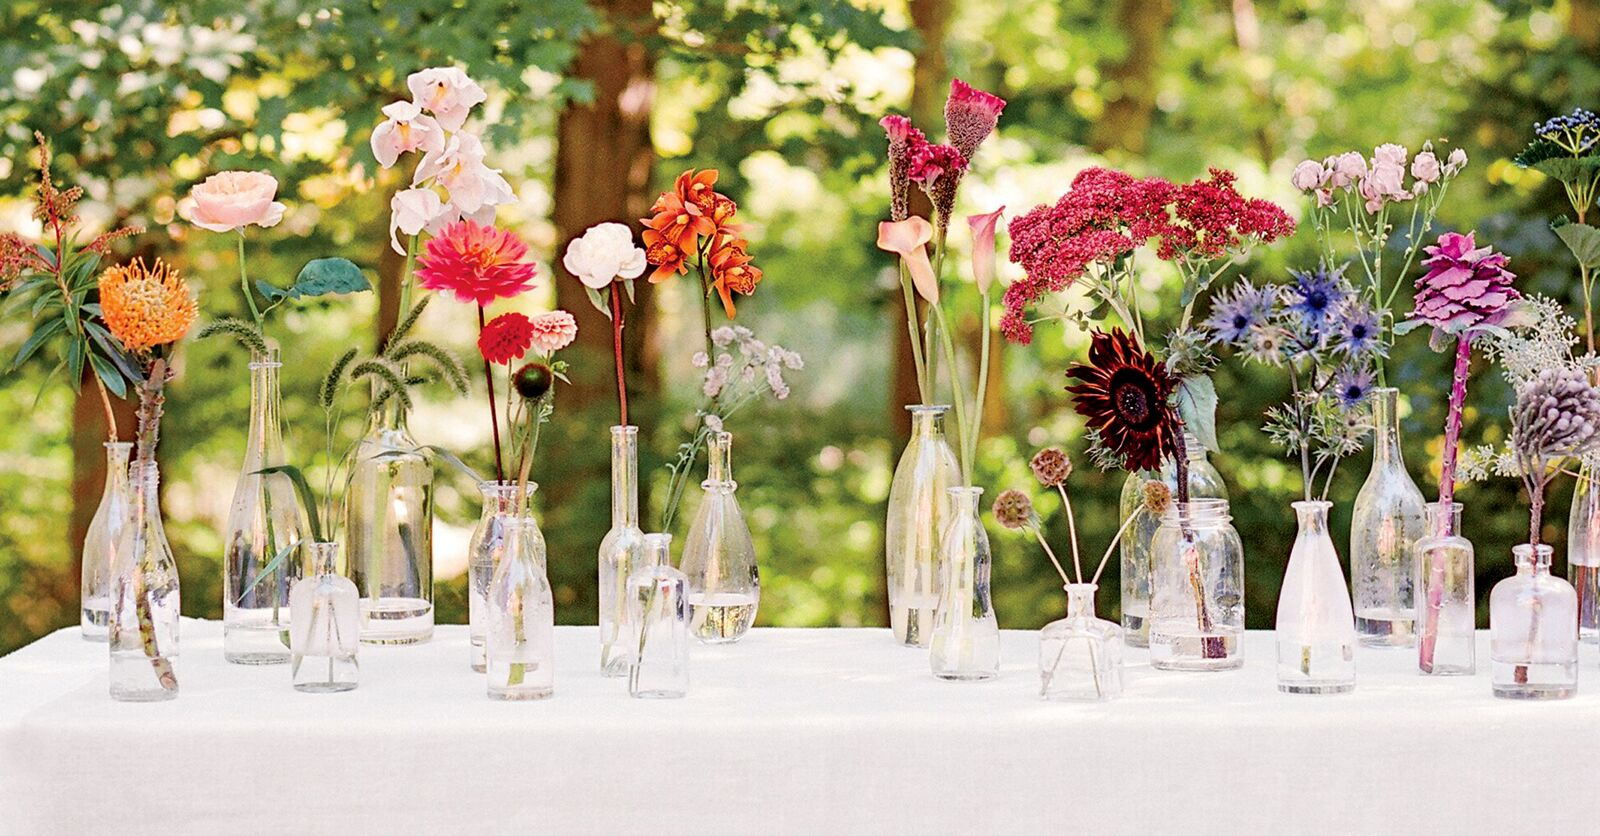 20 Heat-Resistant Flowers For An Outdoor Wedding